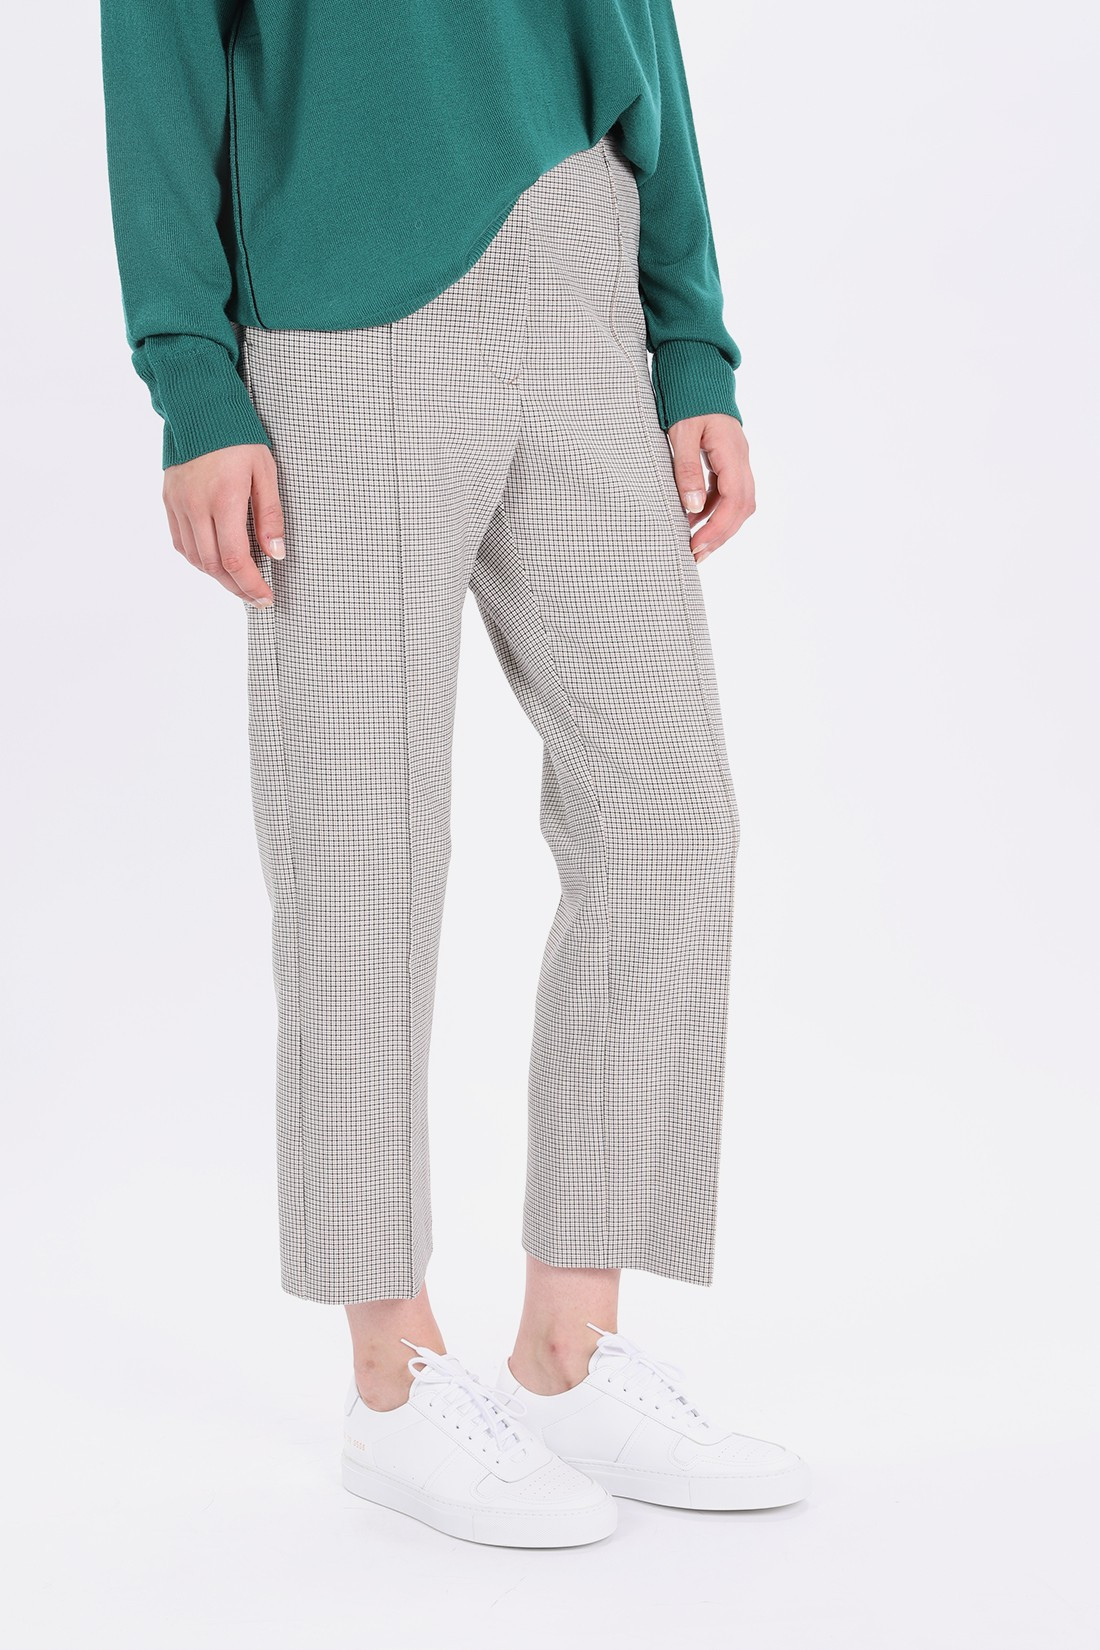 MM6 MAISON MARGIELA / S52ka0167 formal trouser Micro check